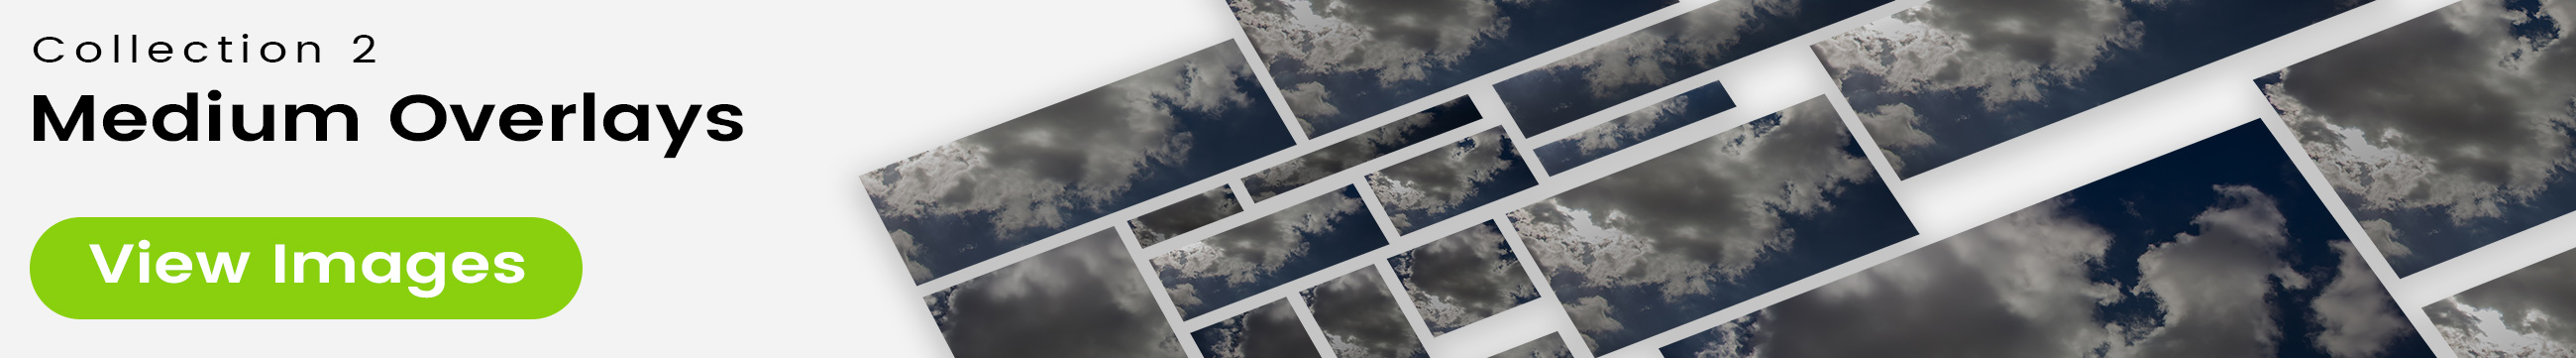 See 25 bonus images included with clouds stock image 9503. Collection 2 of 4 features a medium-dark overlay design.